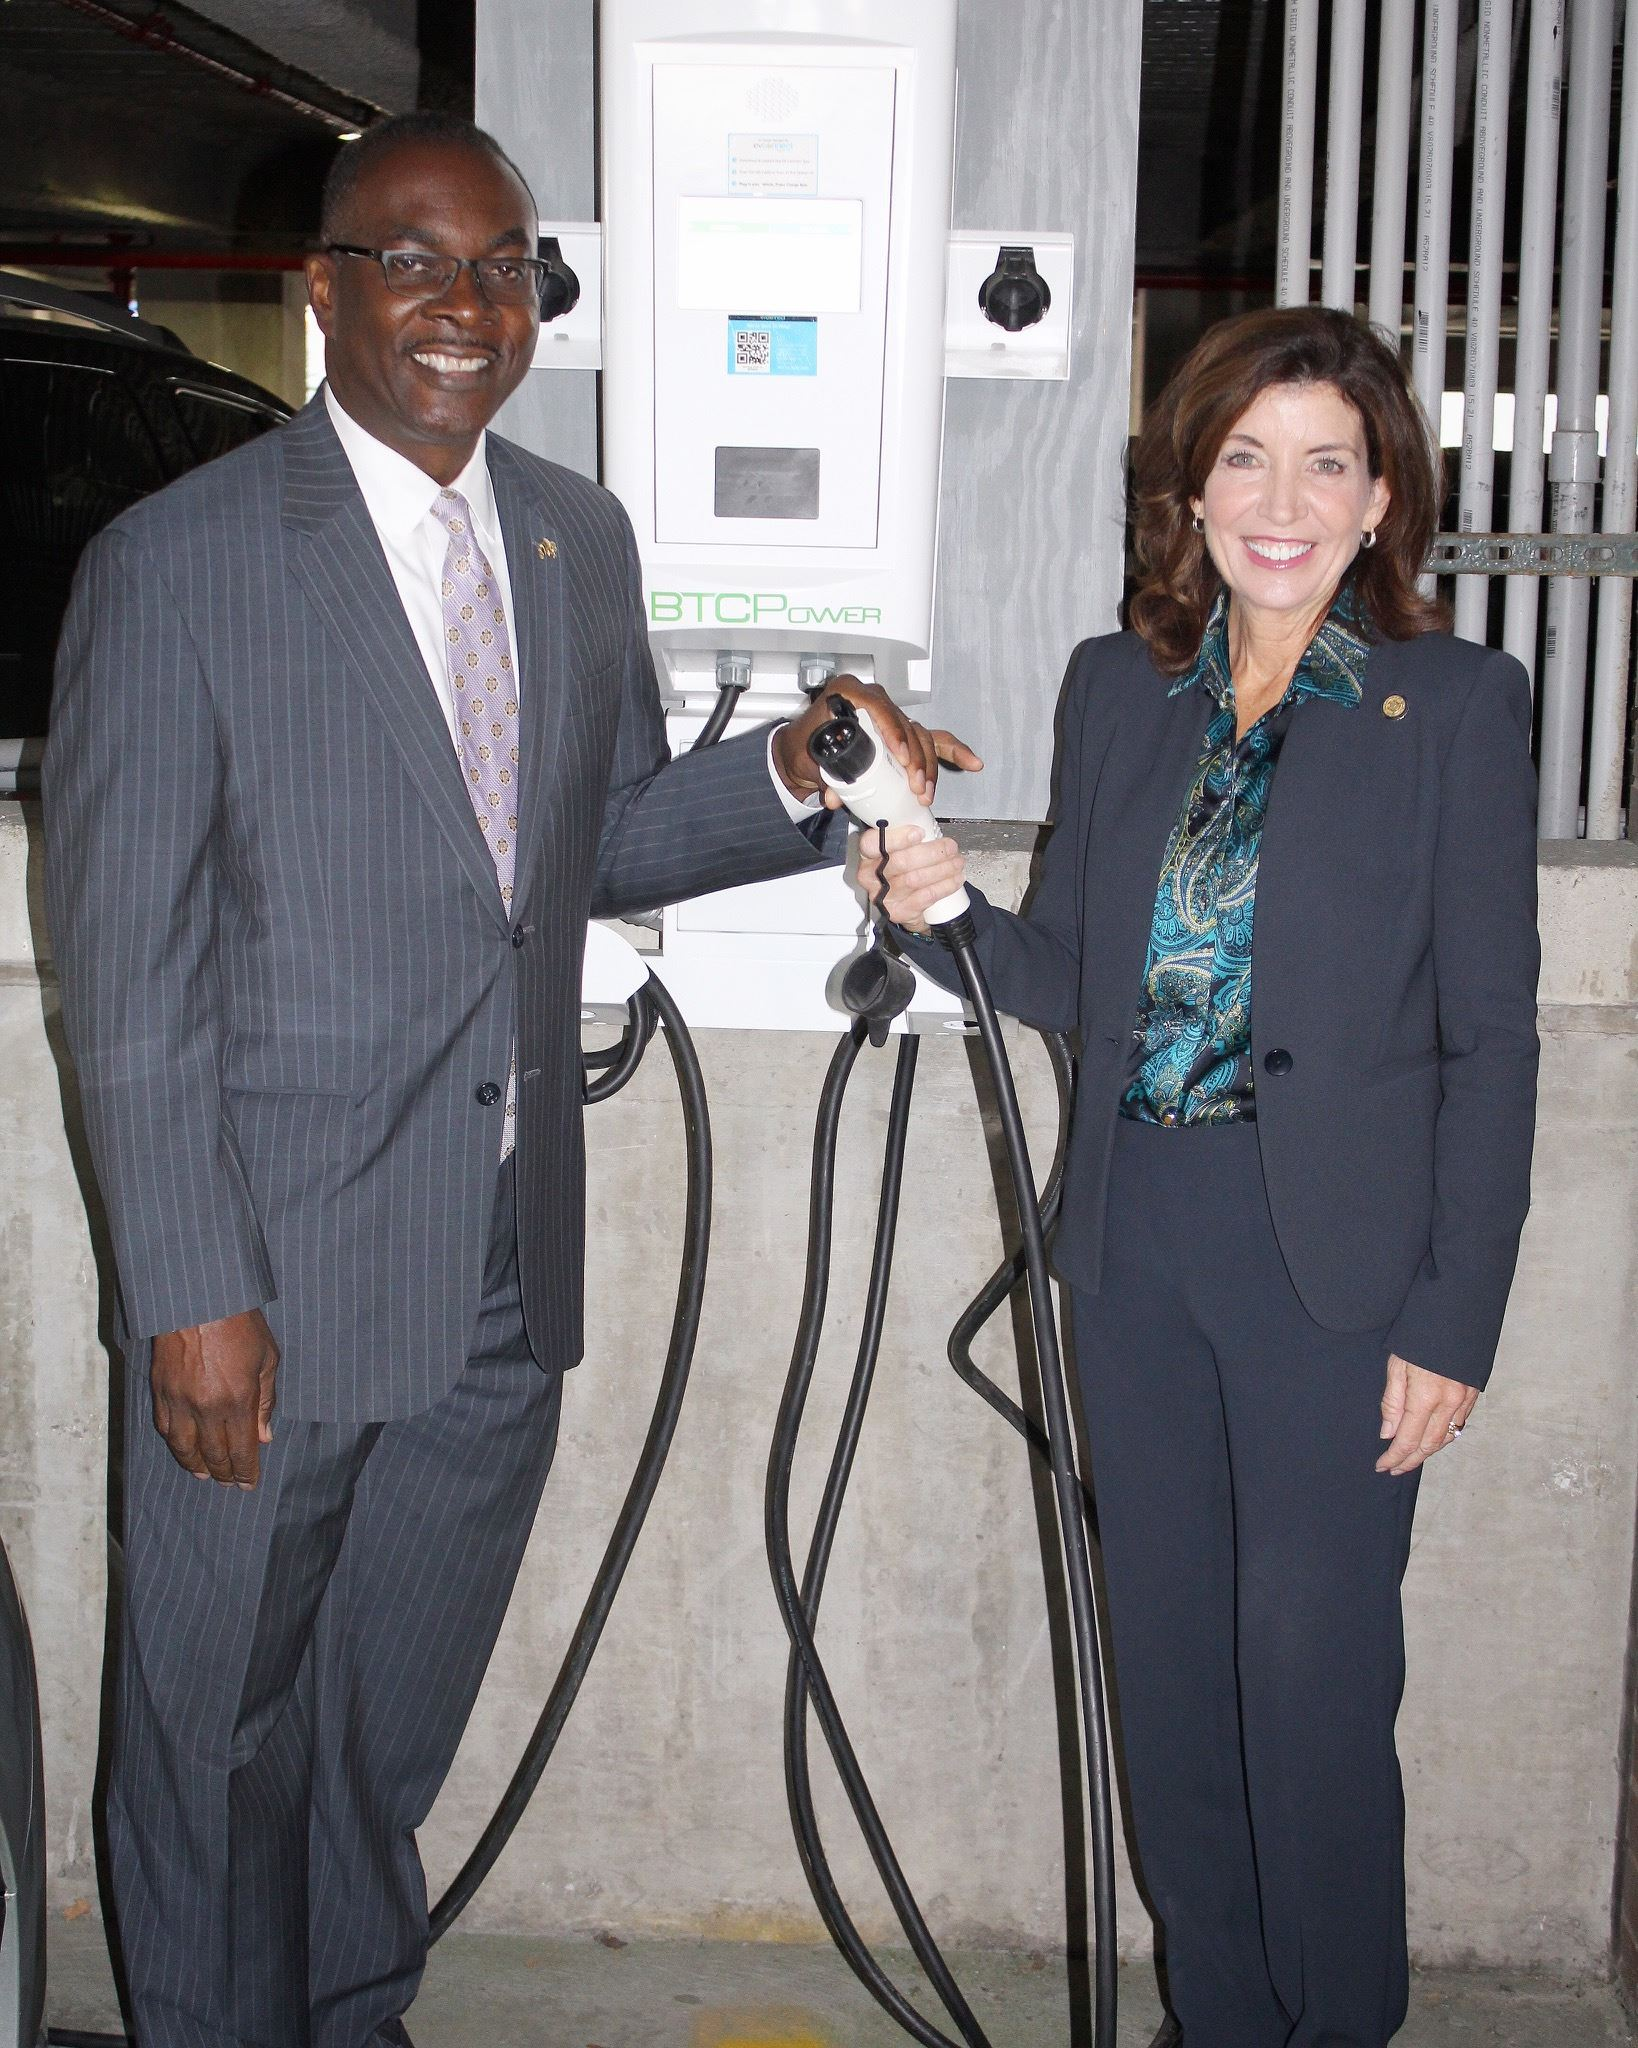 Electric charger stations conf